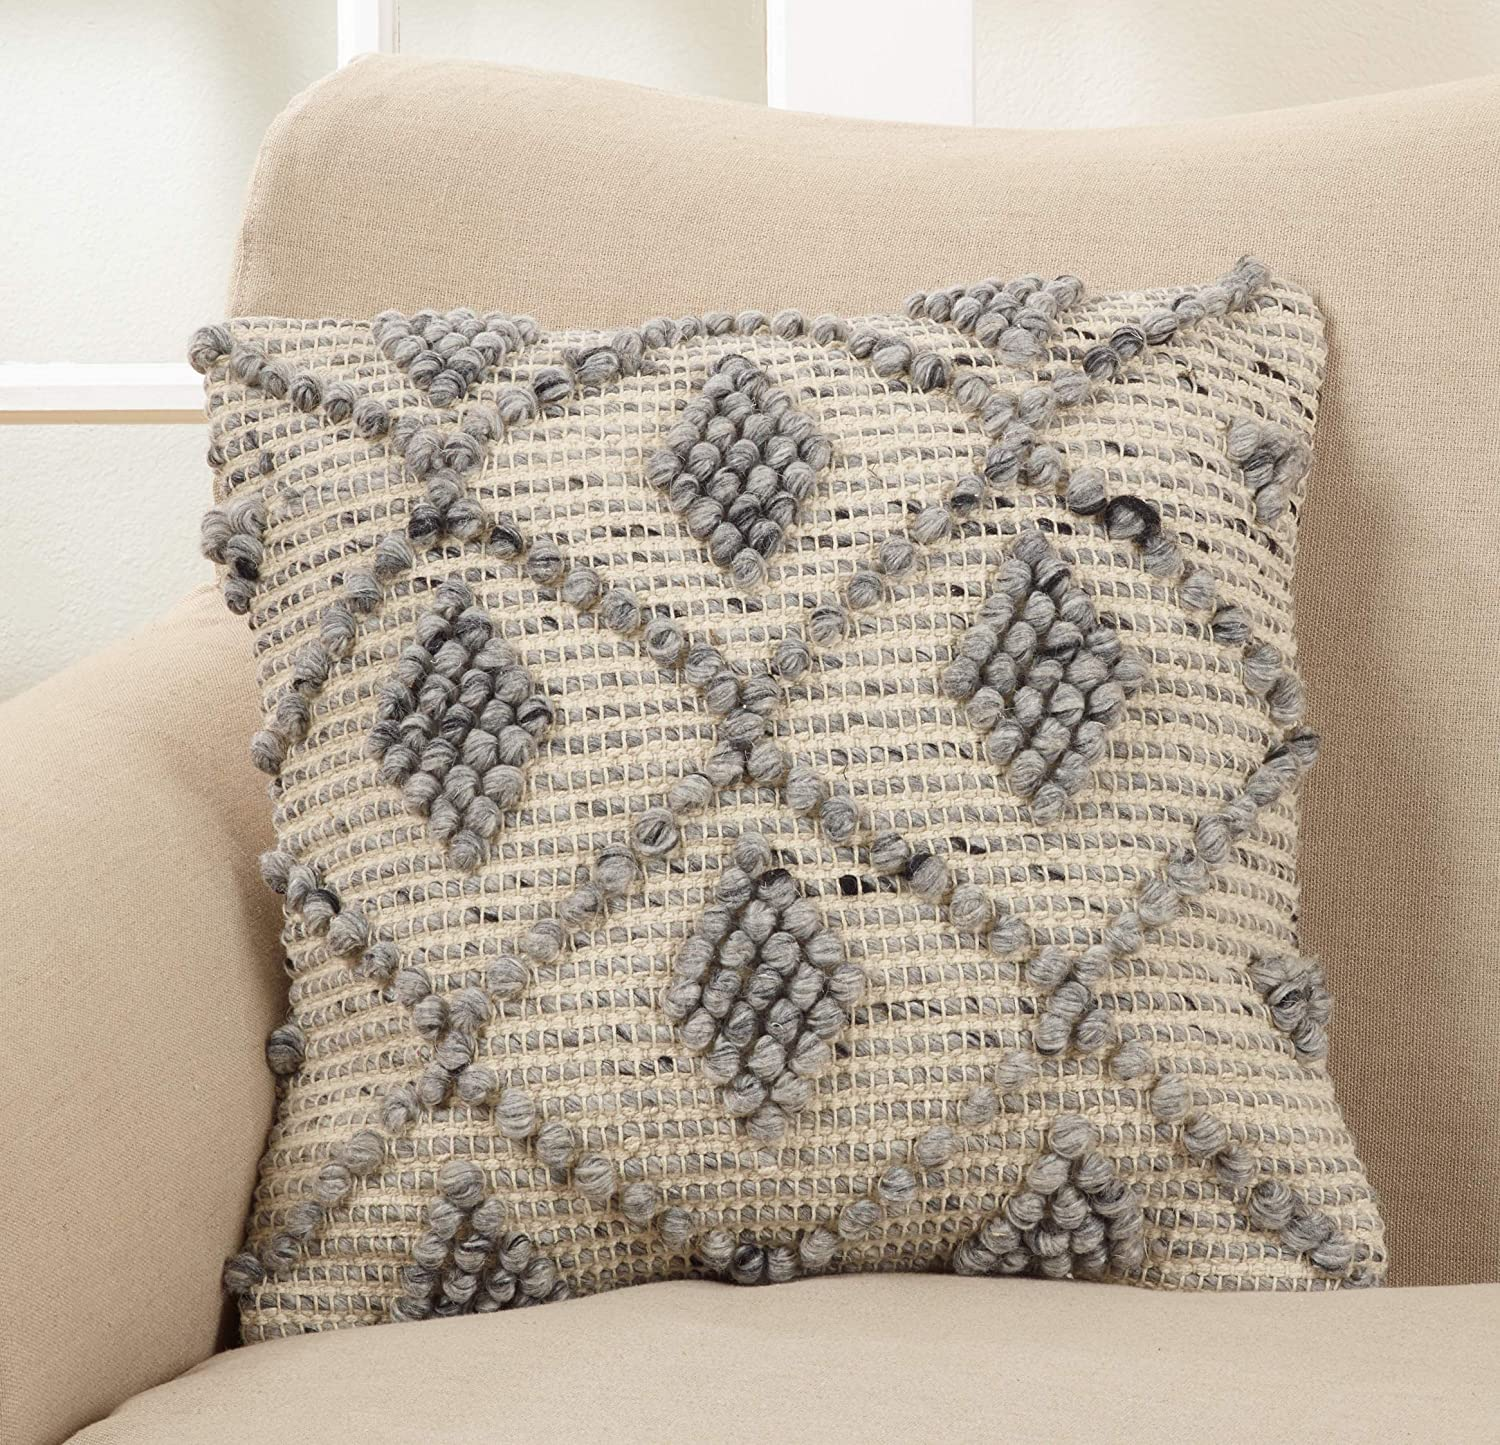 Saro Lifestyle Isaiah Design Wool Blend Throw Pillow With Down Filling And Diamond Weave Pattern 18 Grey Home Kitchen